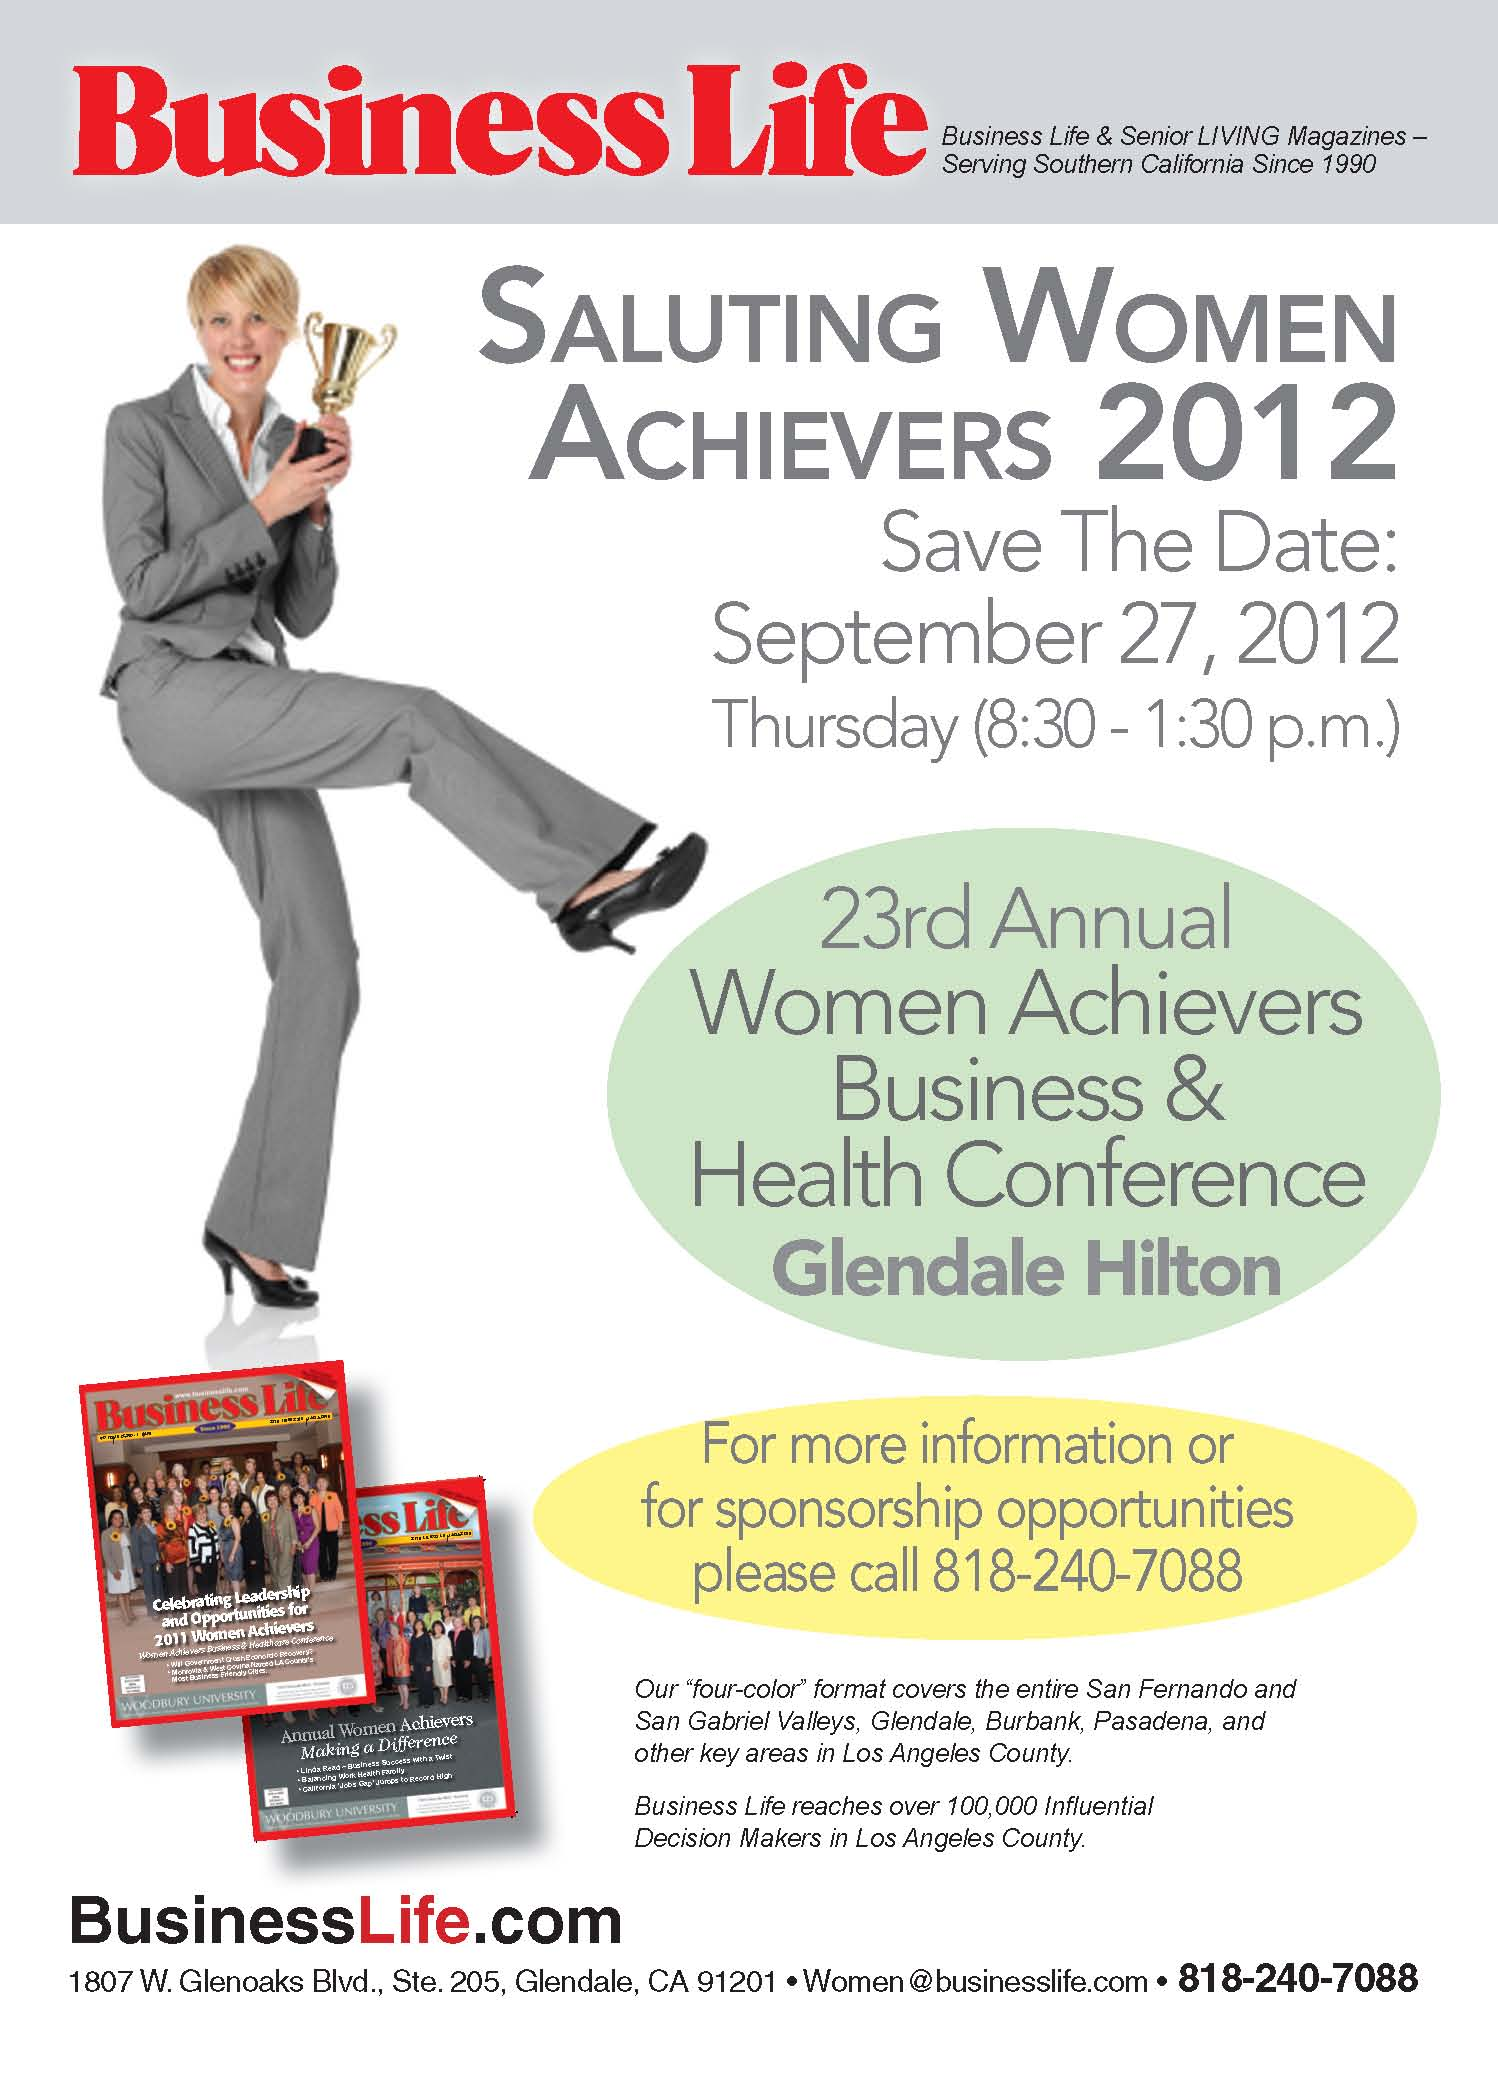 Saluting Women Achievers 2012!